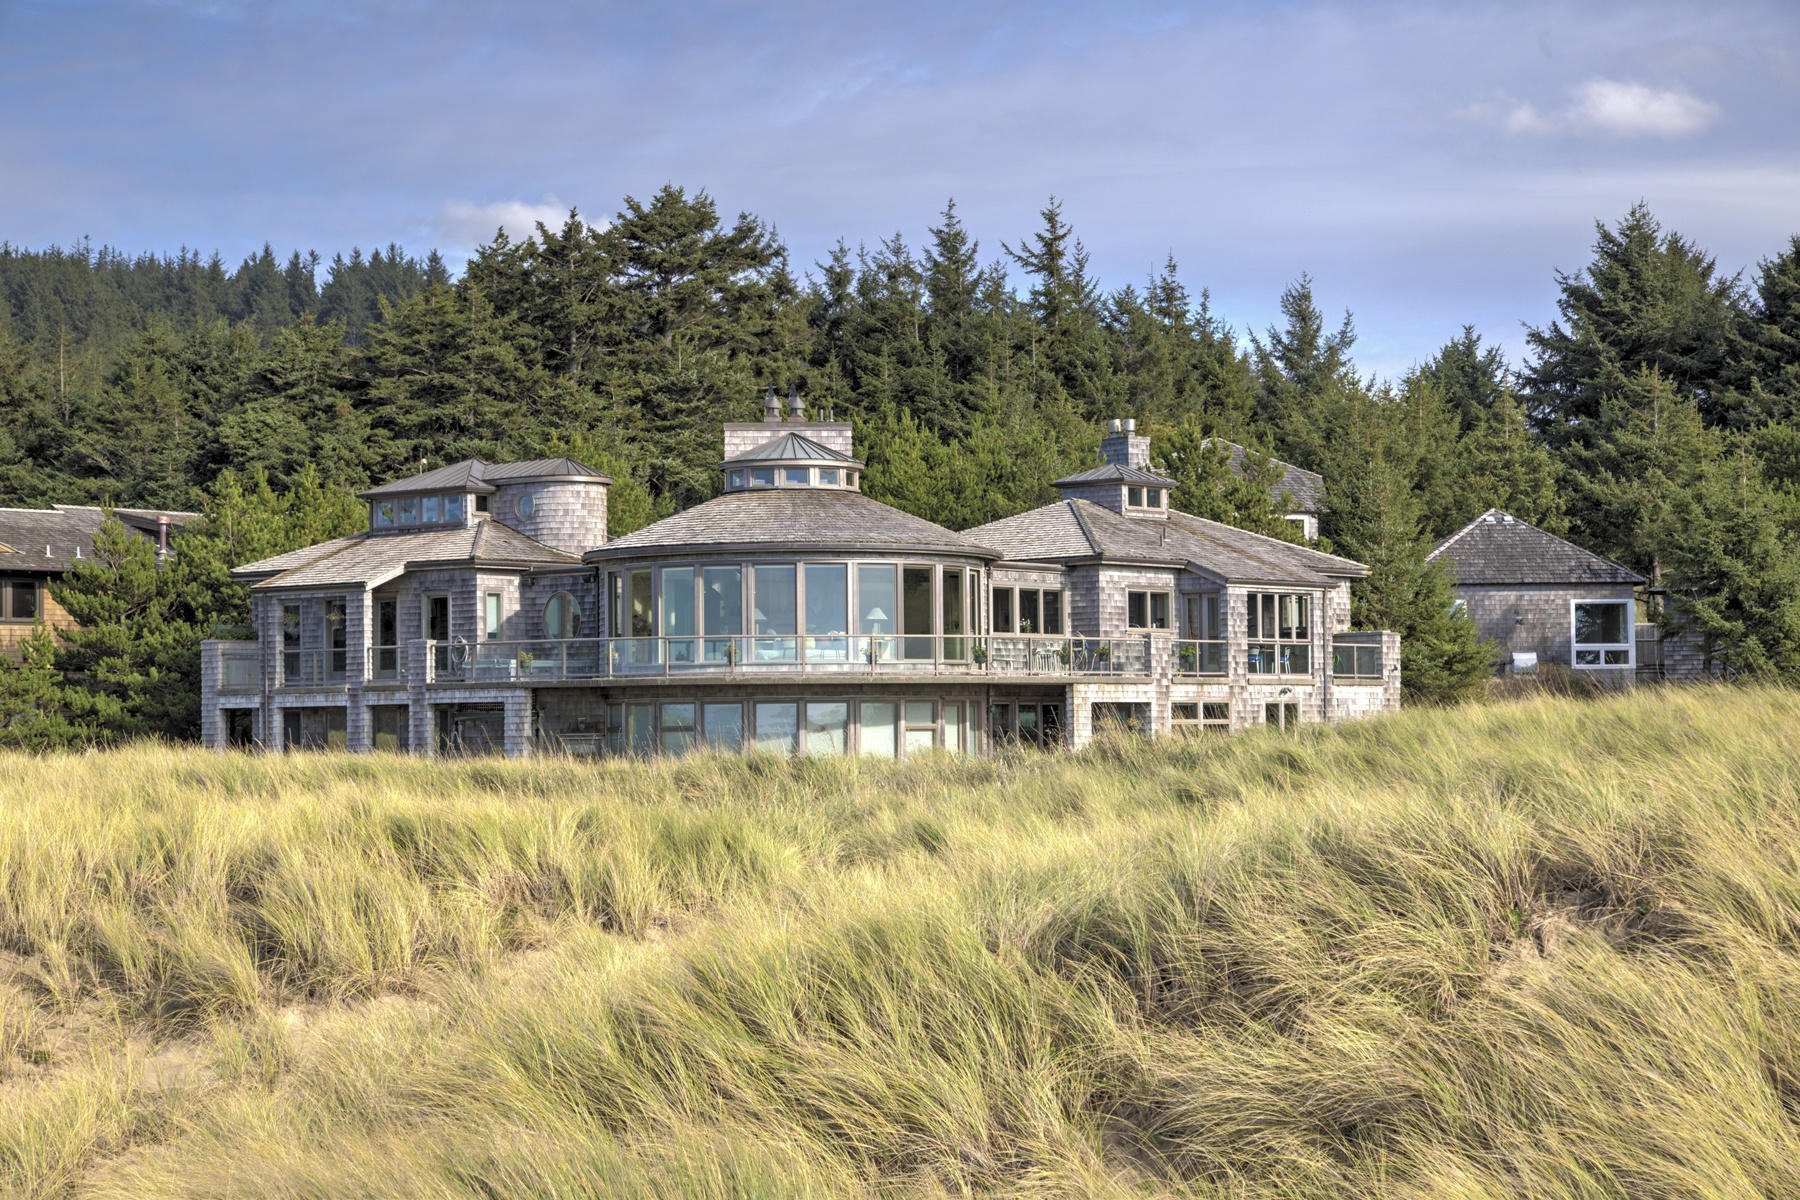 Single Family Home for Sale at 640 N Oak ST, CANNON BEACH, OR Cannon Beach, Oregon 97110 United States